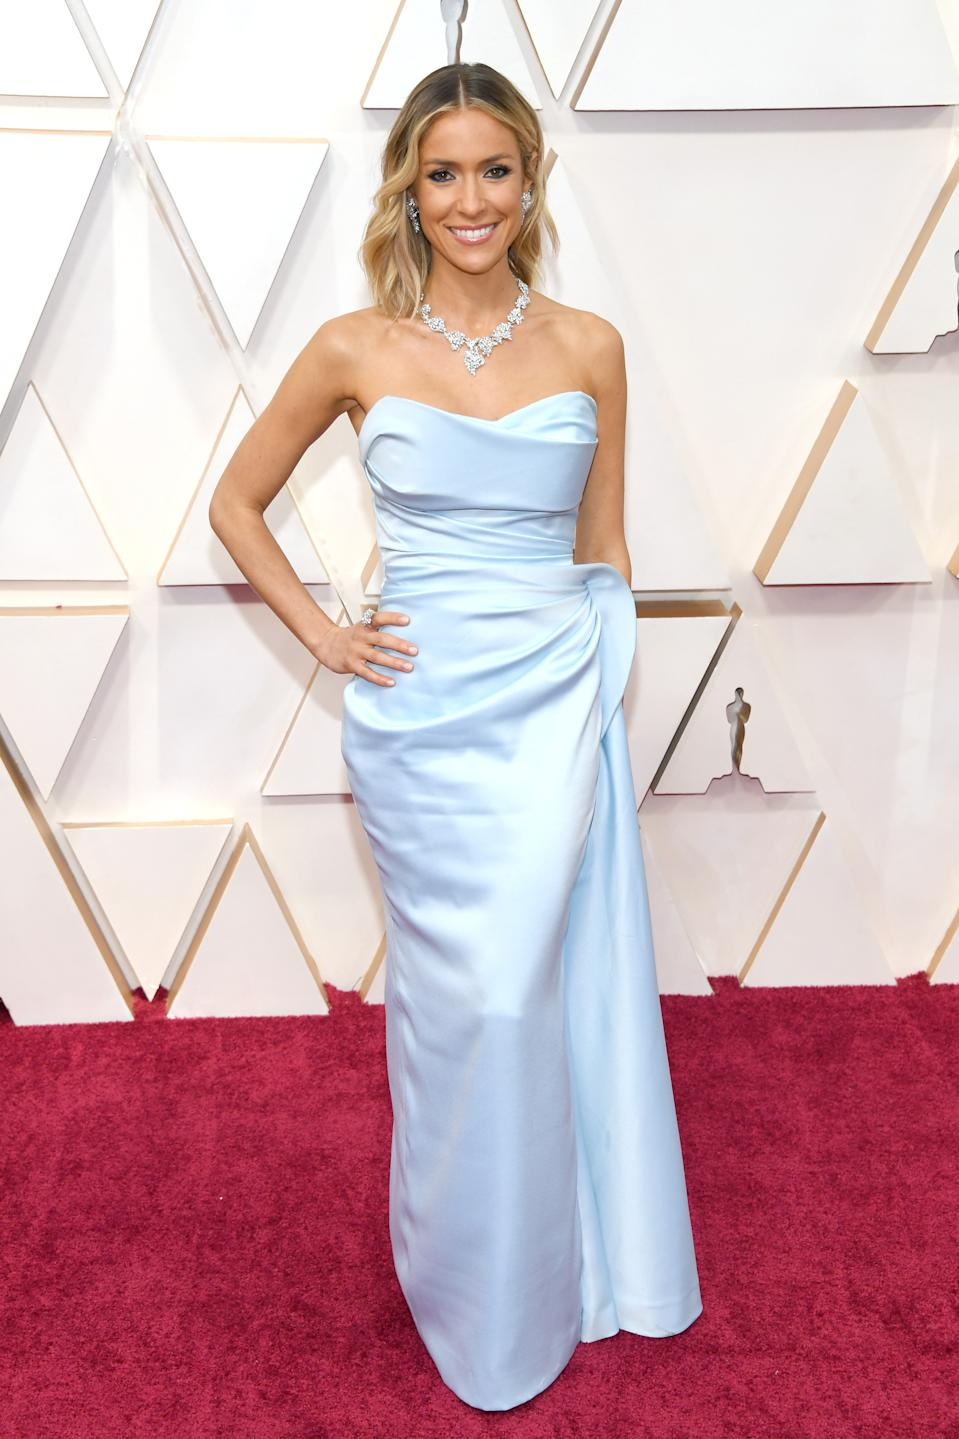 The E! red carpet correspondent and reality star channelled old Hollywood glamour in an ice blue gown by Valdrin Sahiti.